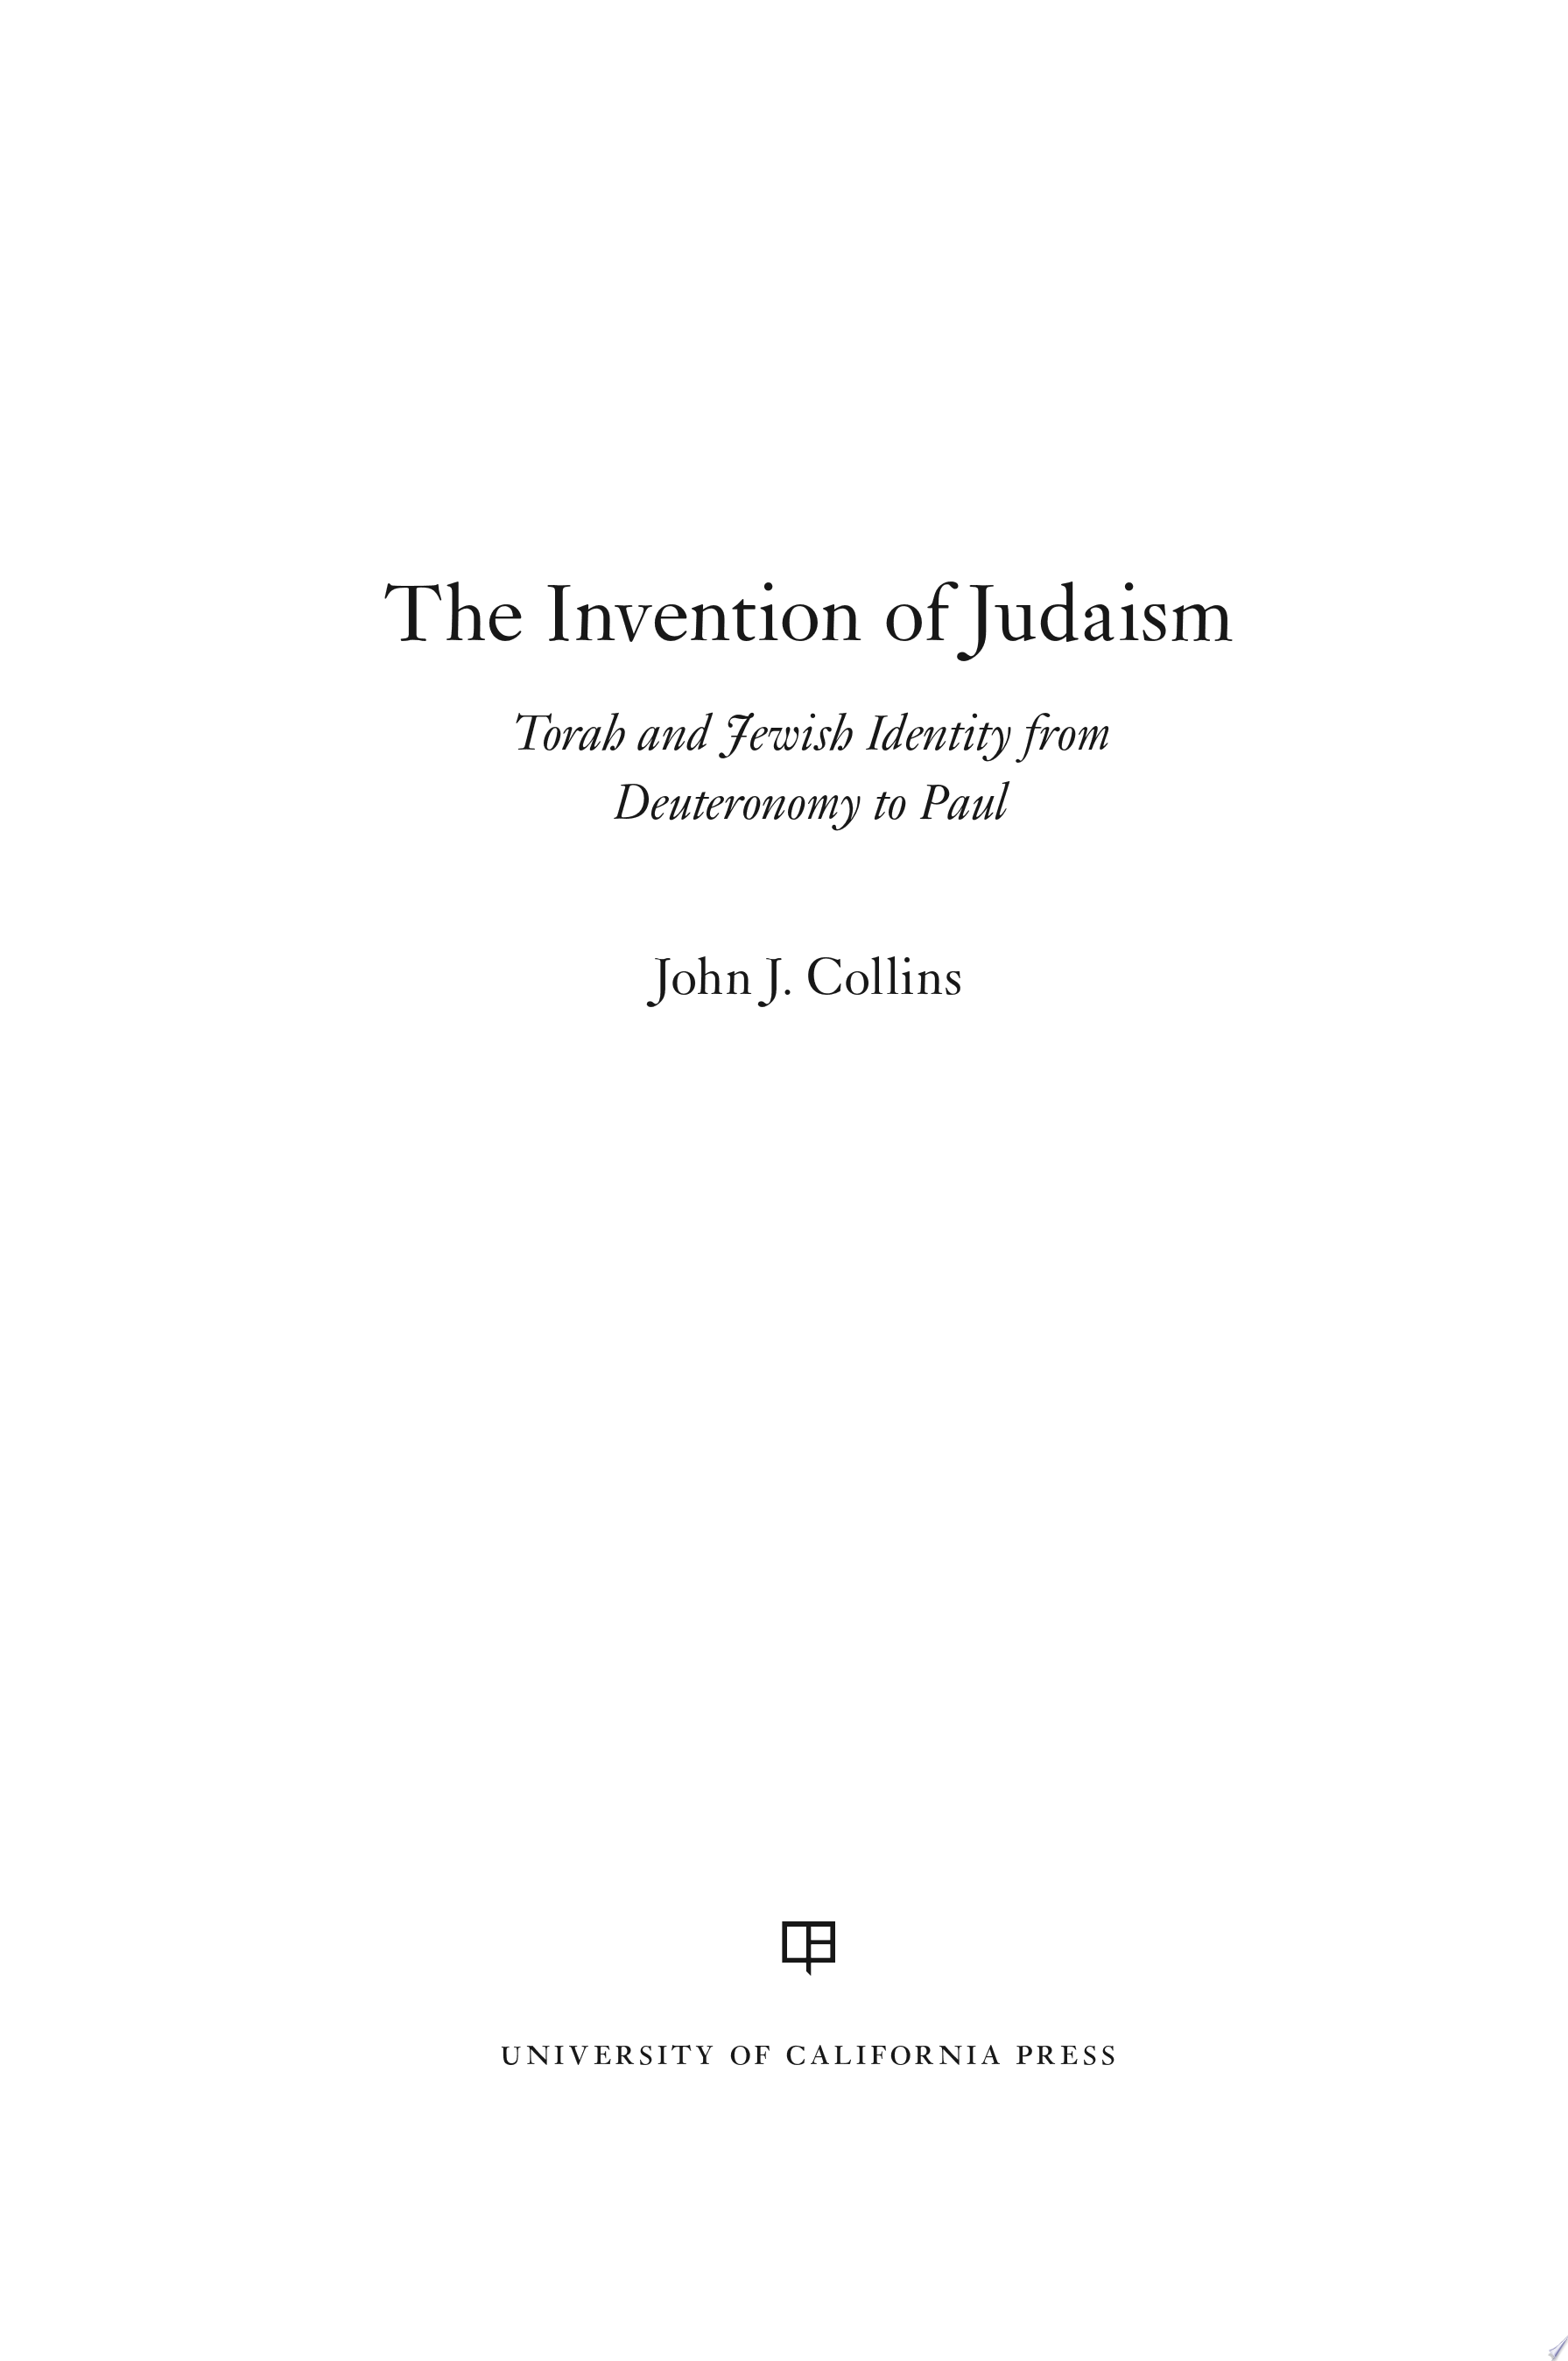 The Invention of Judaism